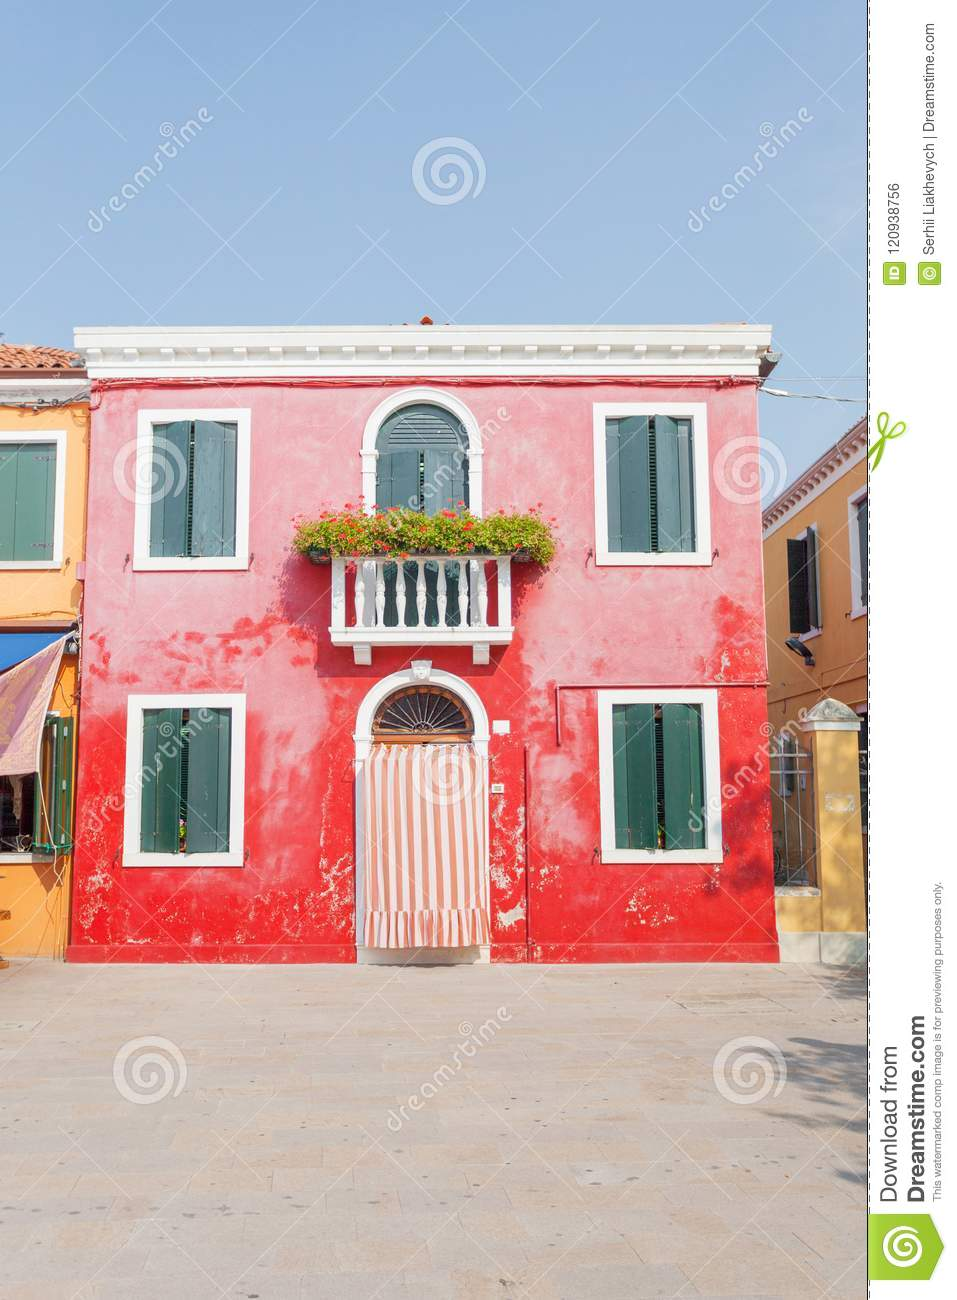 Colorful Houses In Burano, Venice, Italy Stock Photo - Image of blue ...